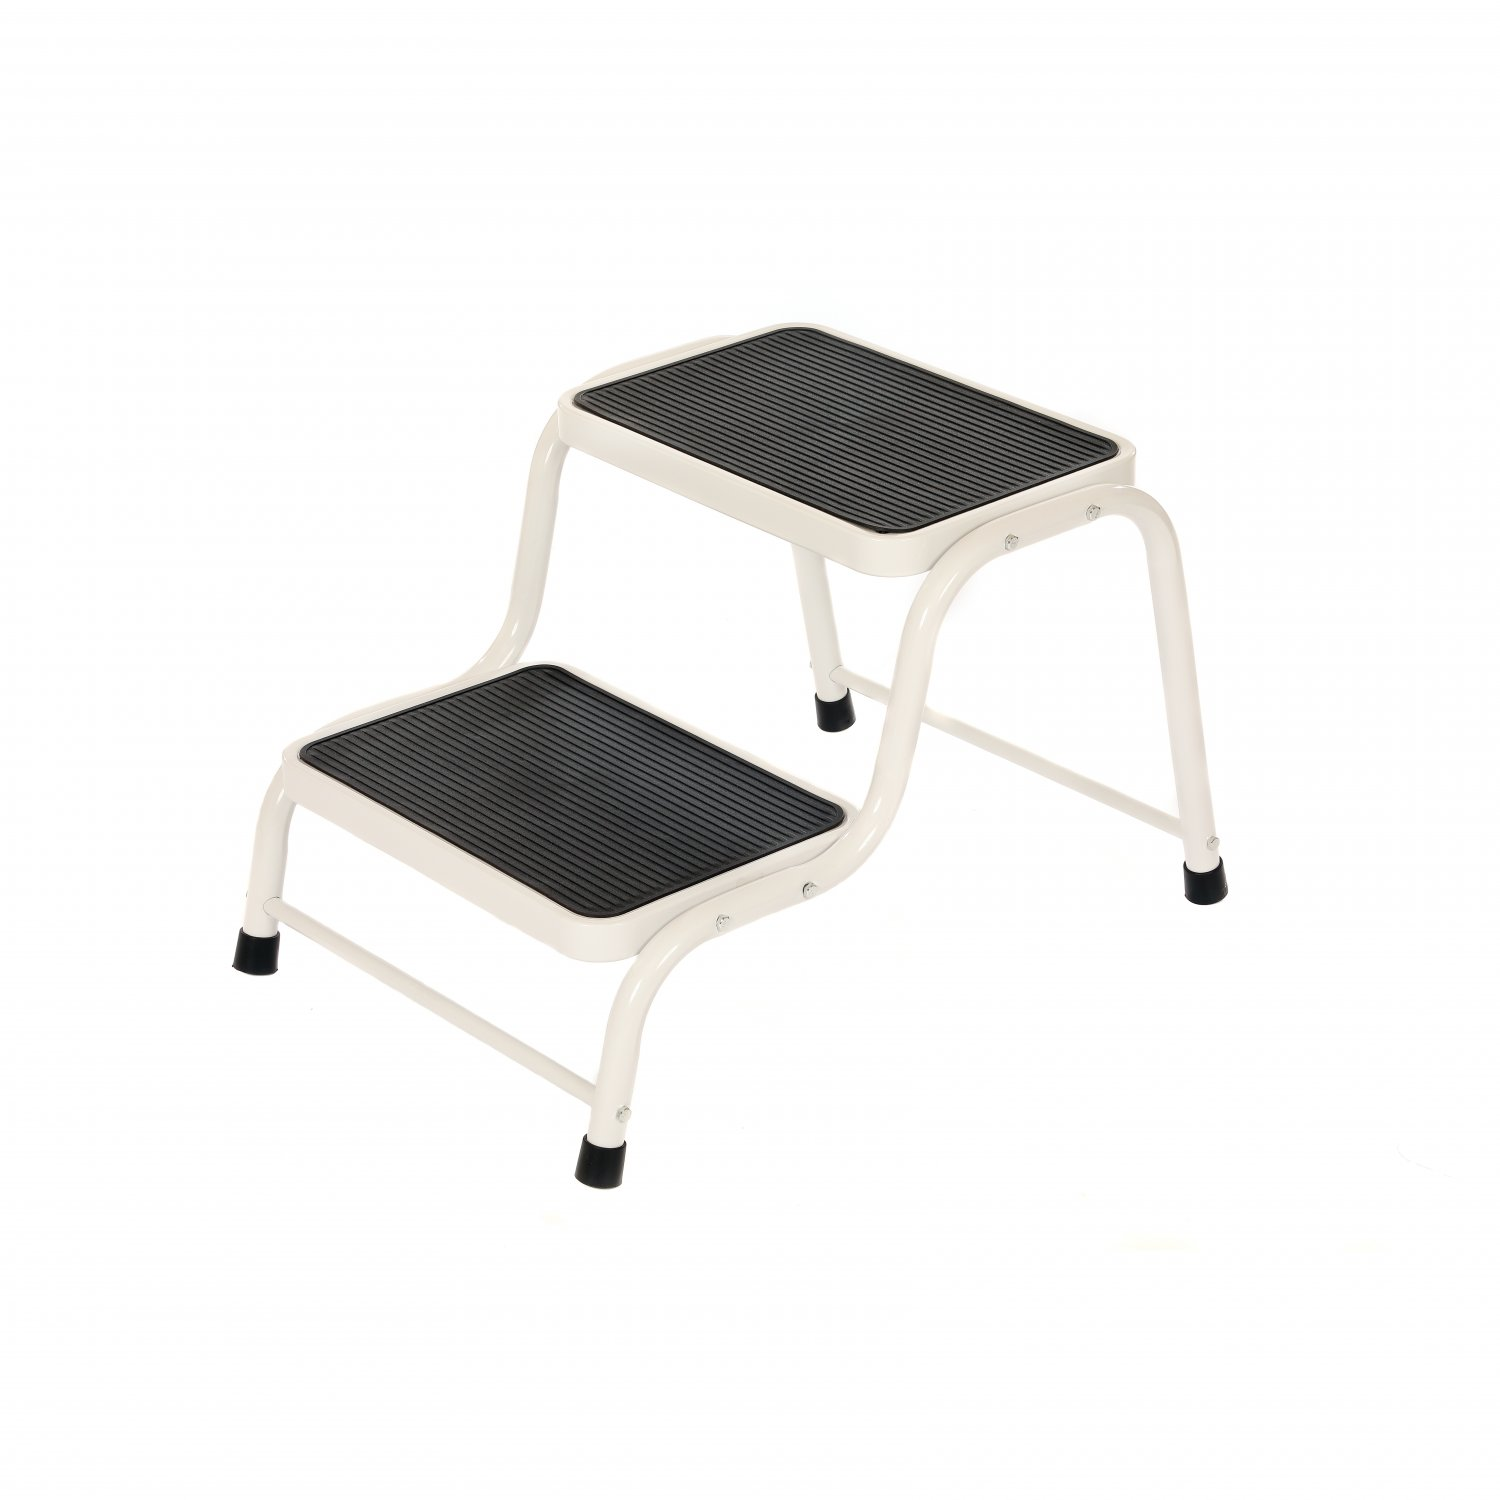 Double Caravan Step Stool Steel Non Slip Rubber Tread Safety